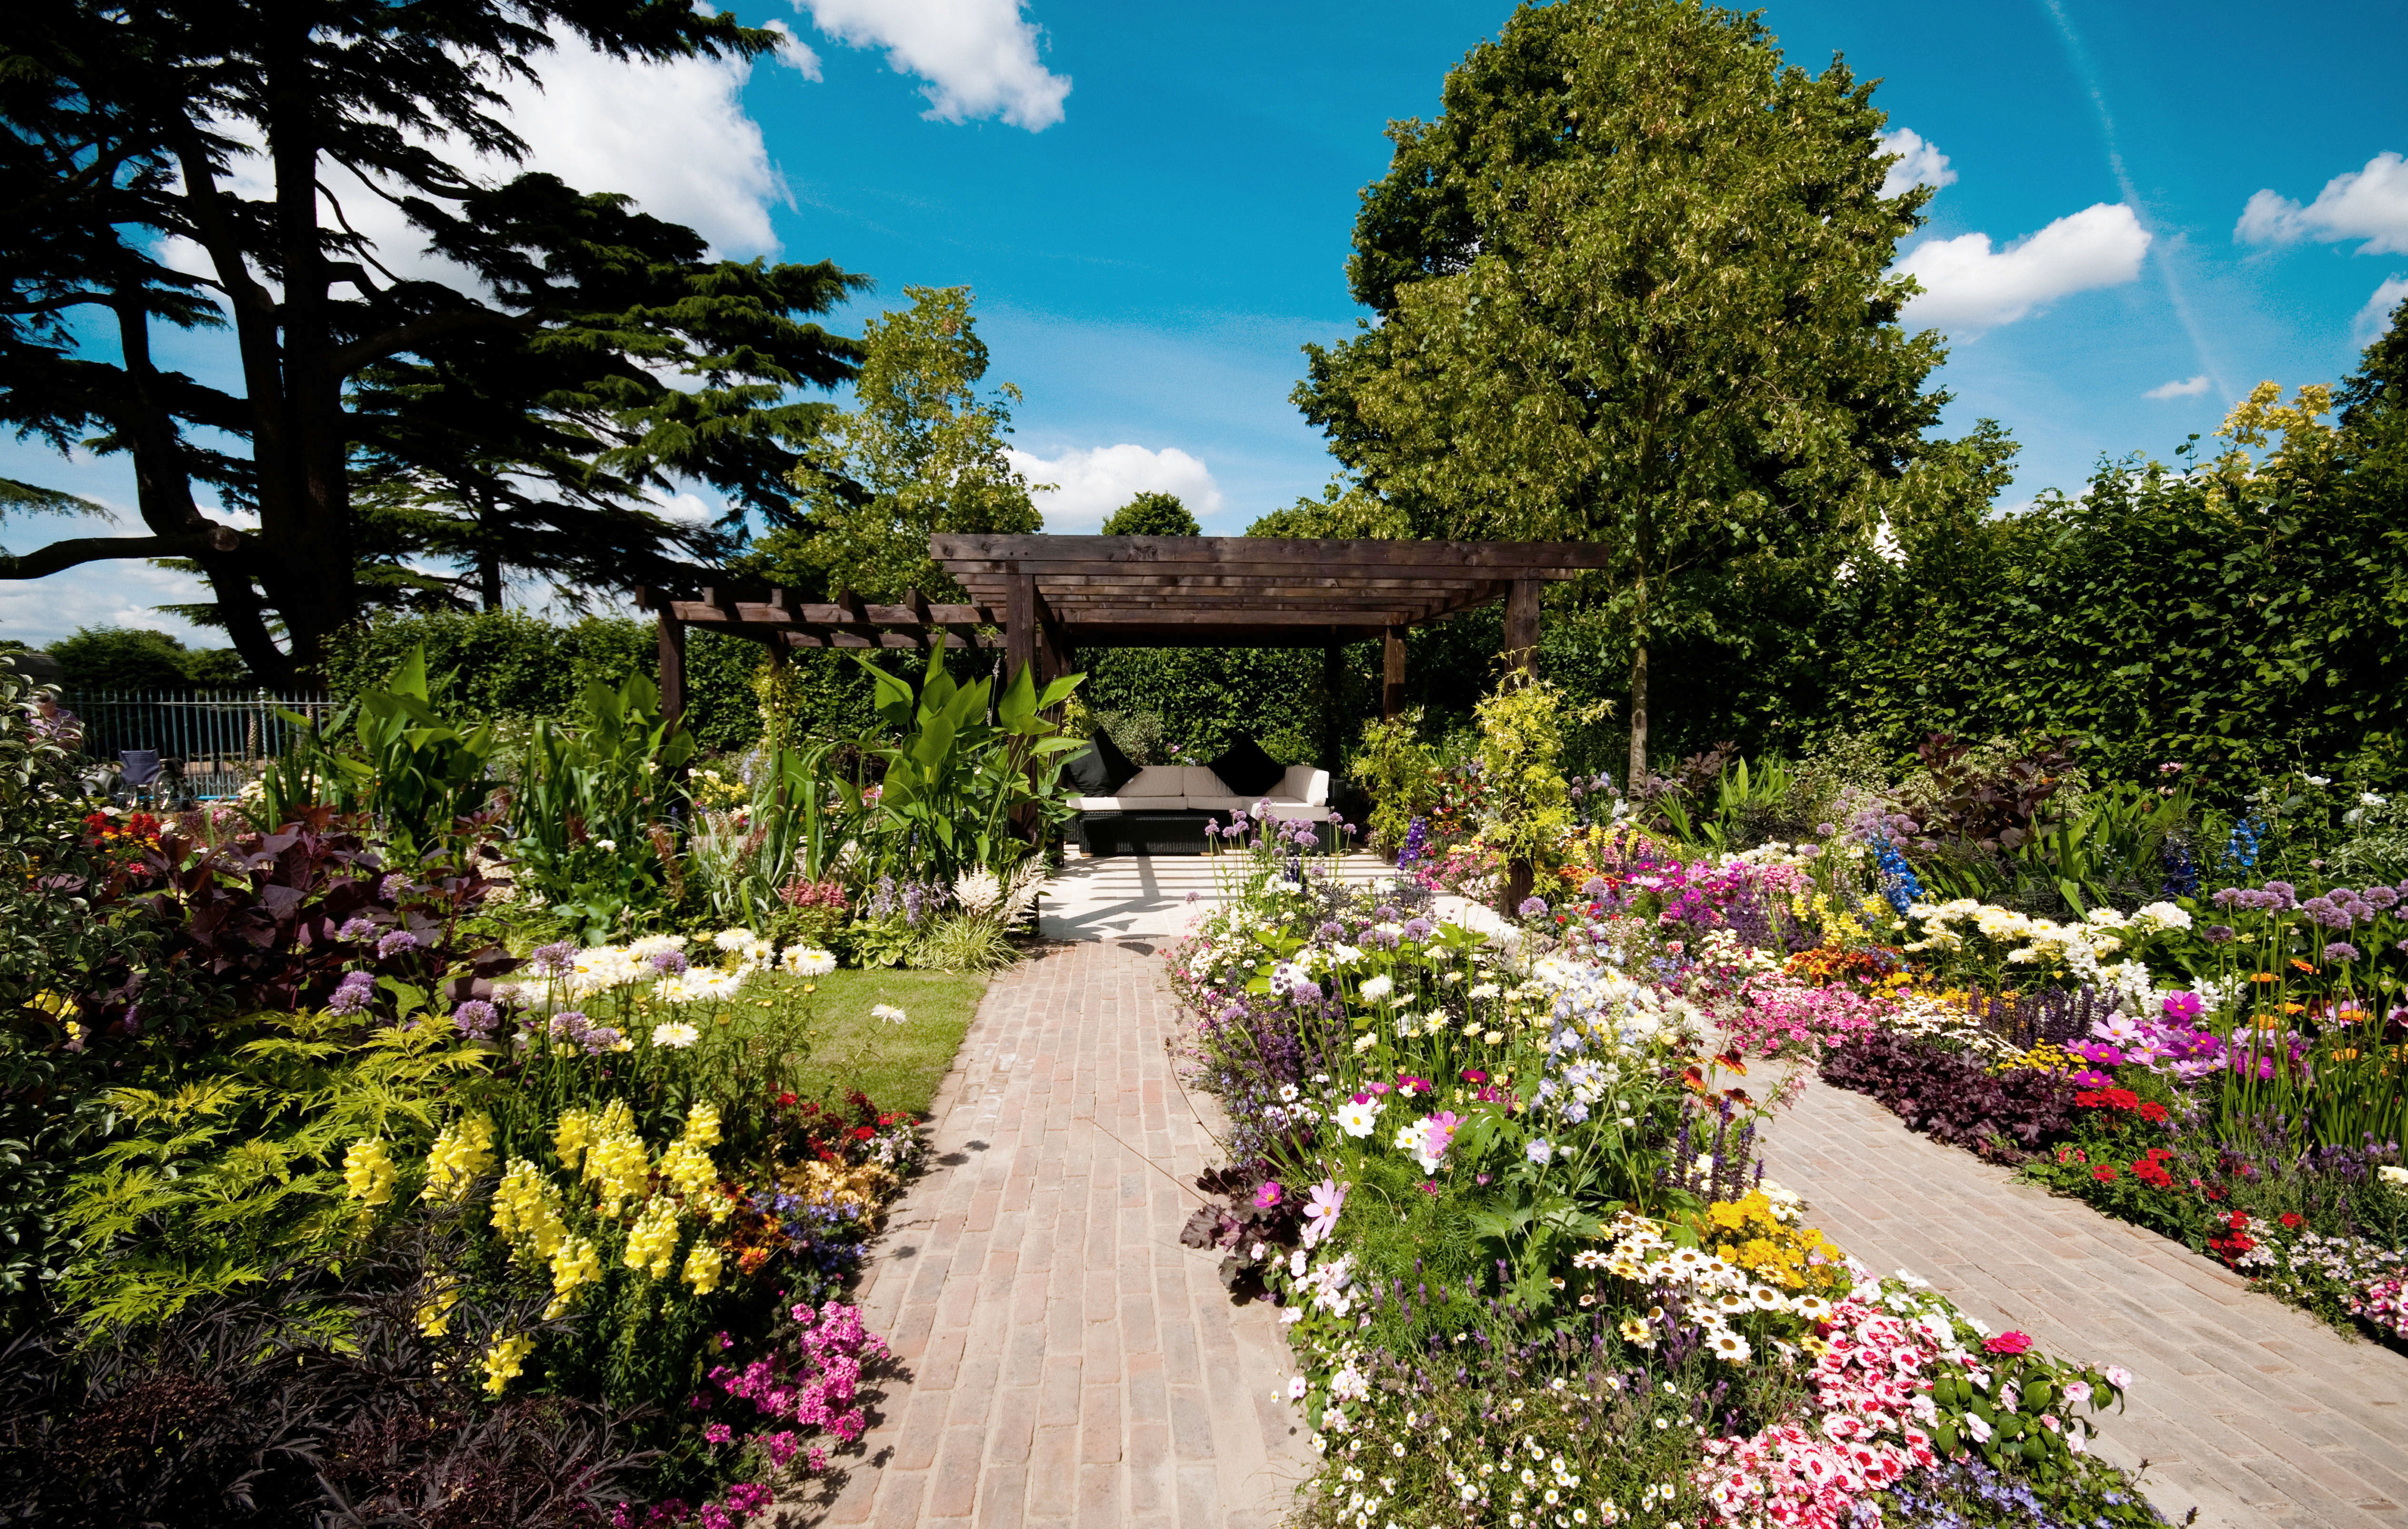 Hampton court flower show when it 39 s on getting there how to get tickets - Hampton court flower show ...